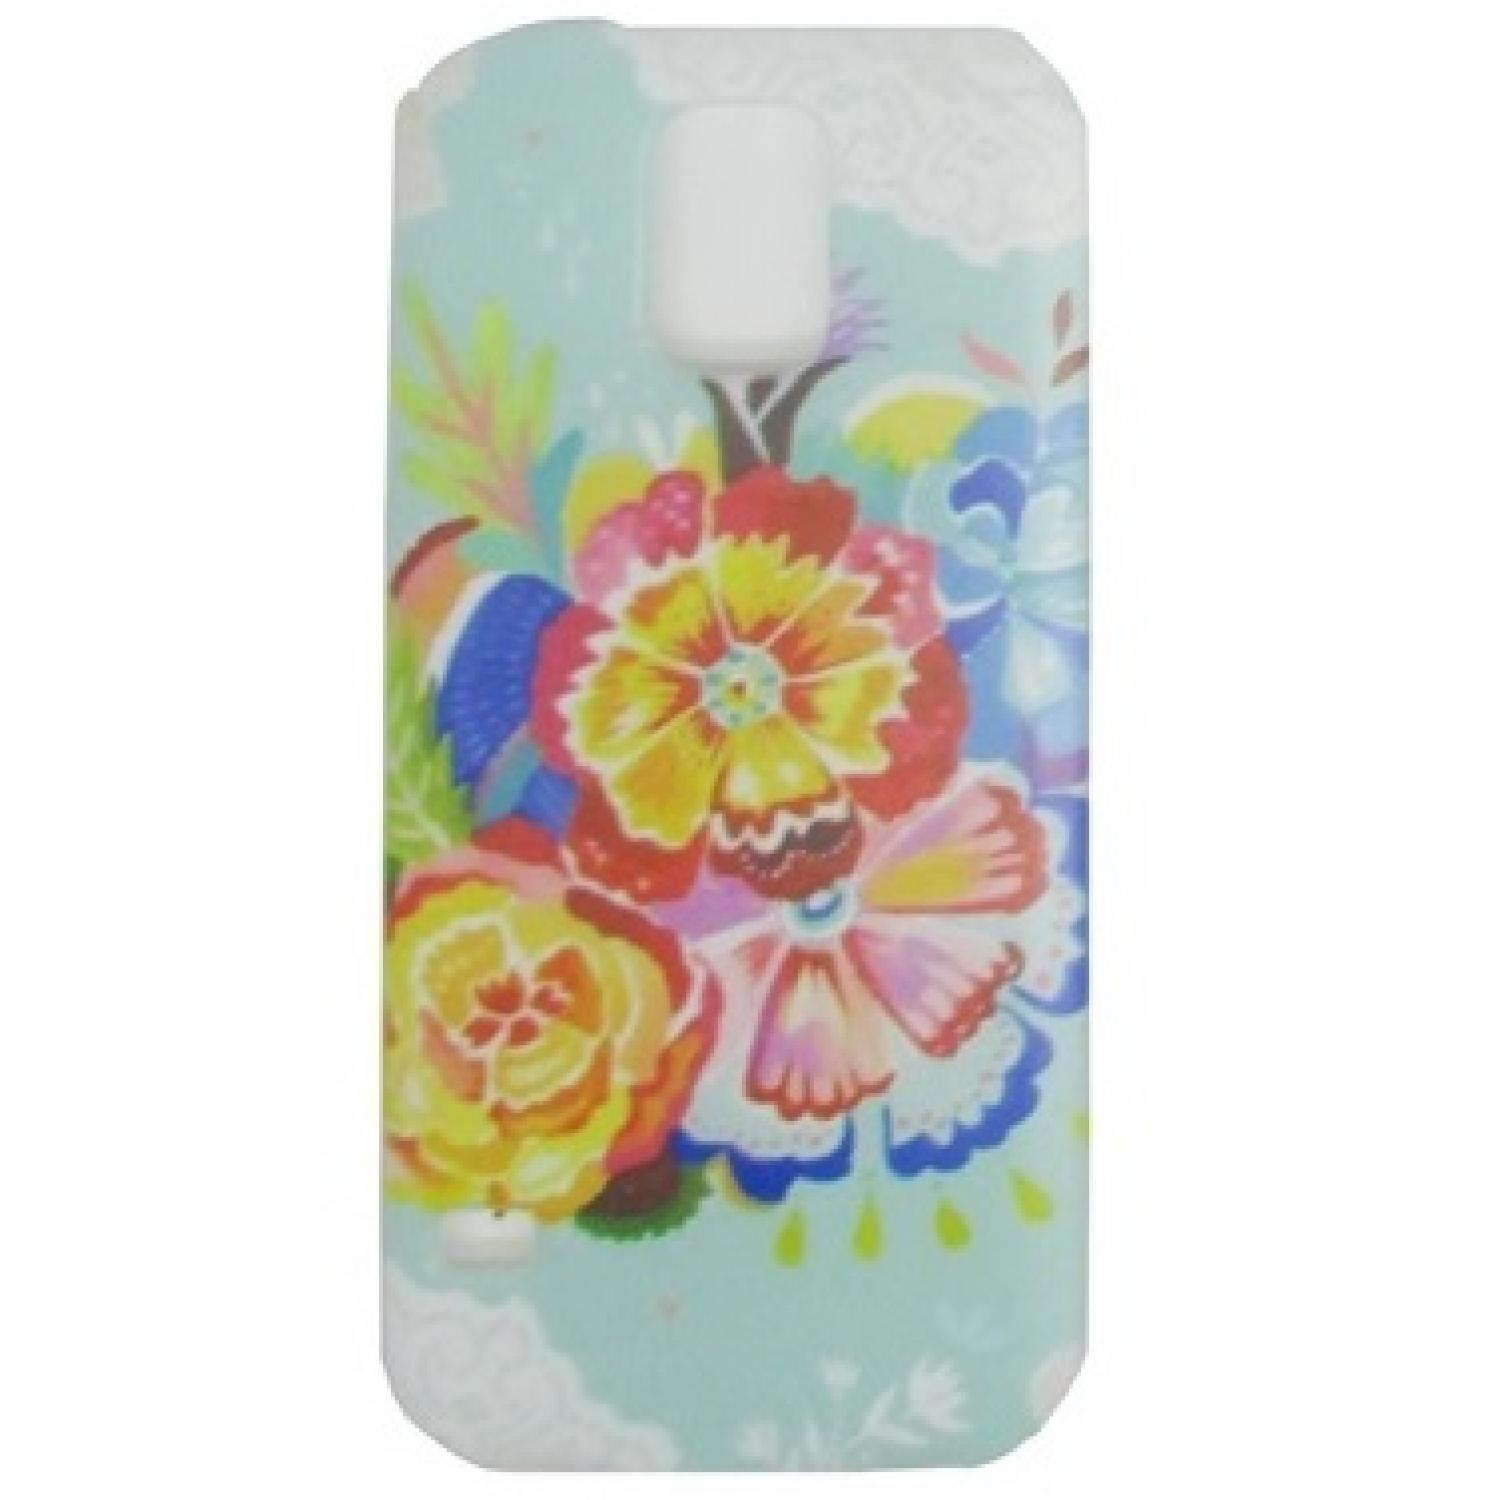 Painting Phone Plastic Case for Samsung Galaxy Note 3 ORI N31 SCDEXX - 14